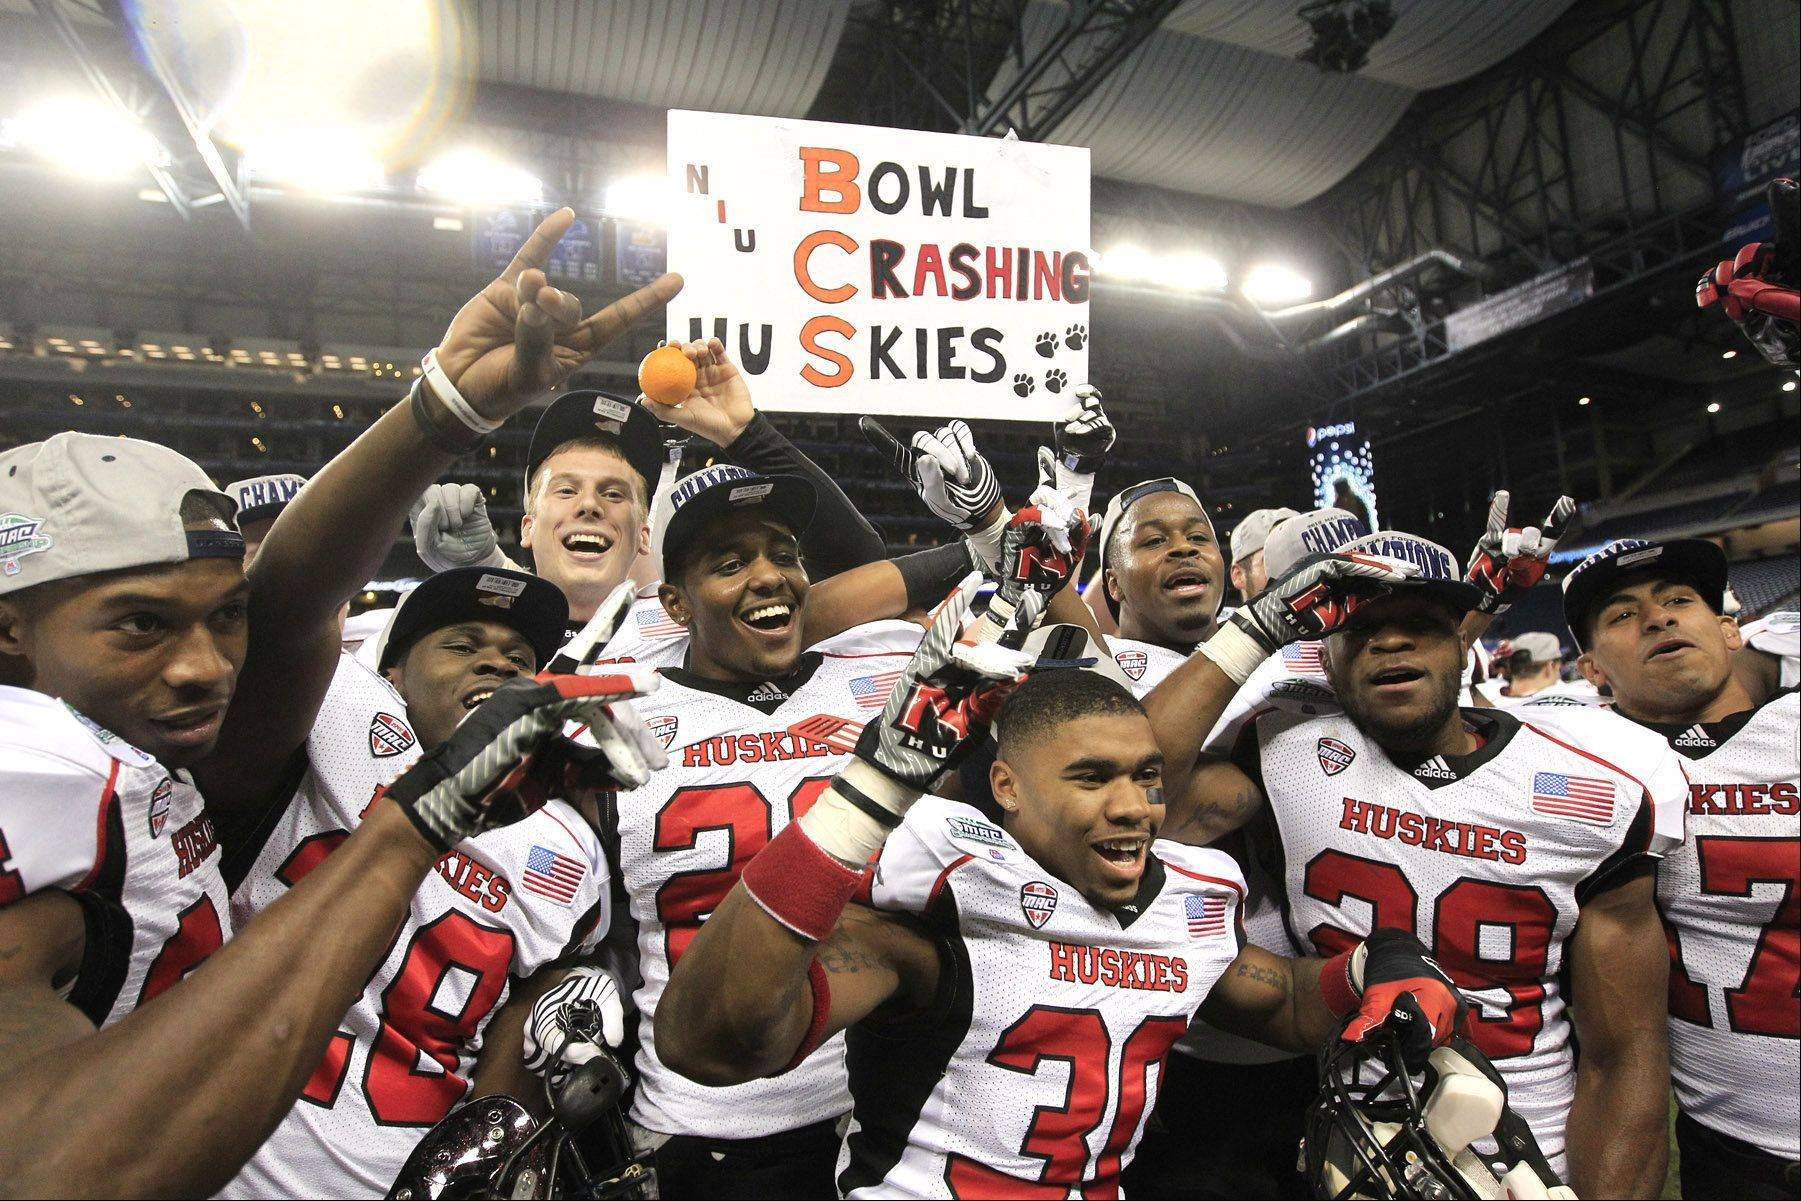 The Northern Illinois team poses for photographers after defeating Kent State 44-37 in double overtime in the Mid-American Conference championship in an NCAA college football game at Ford Field, Friday. After a wild weekend of events, NIU